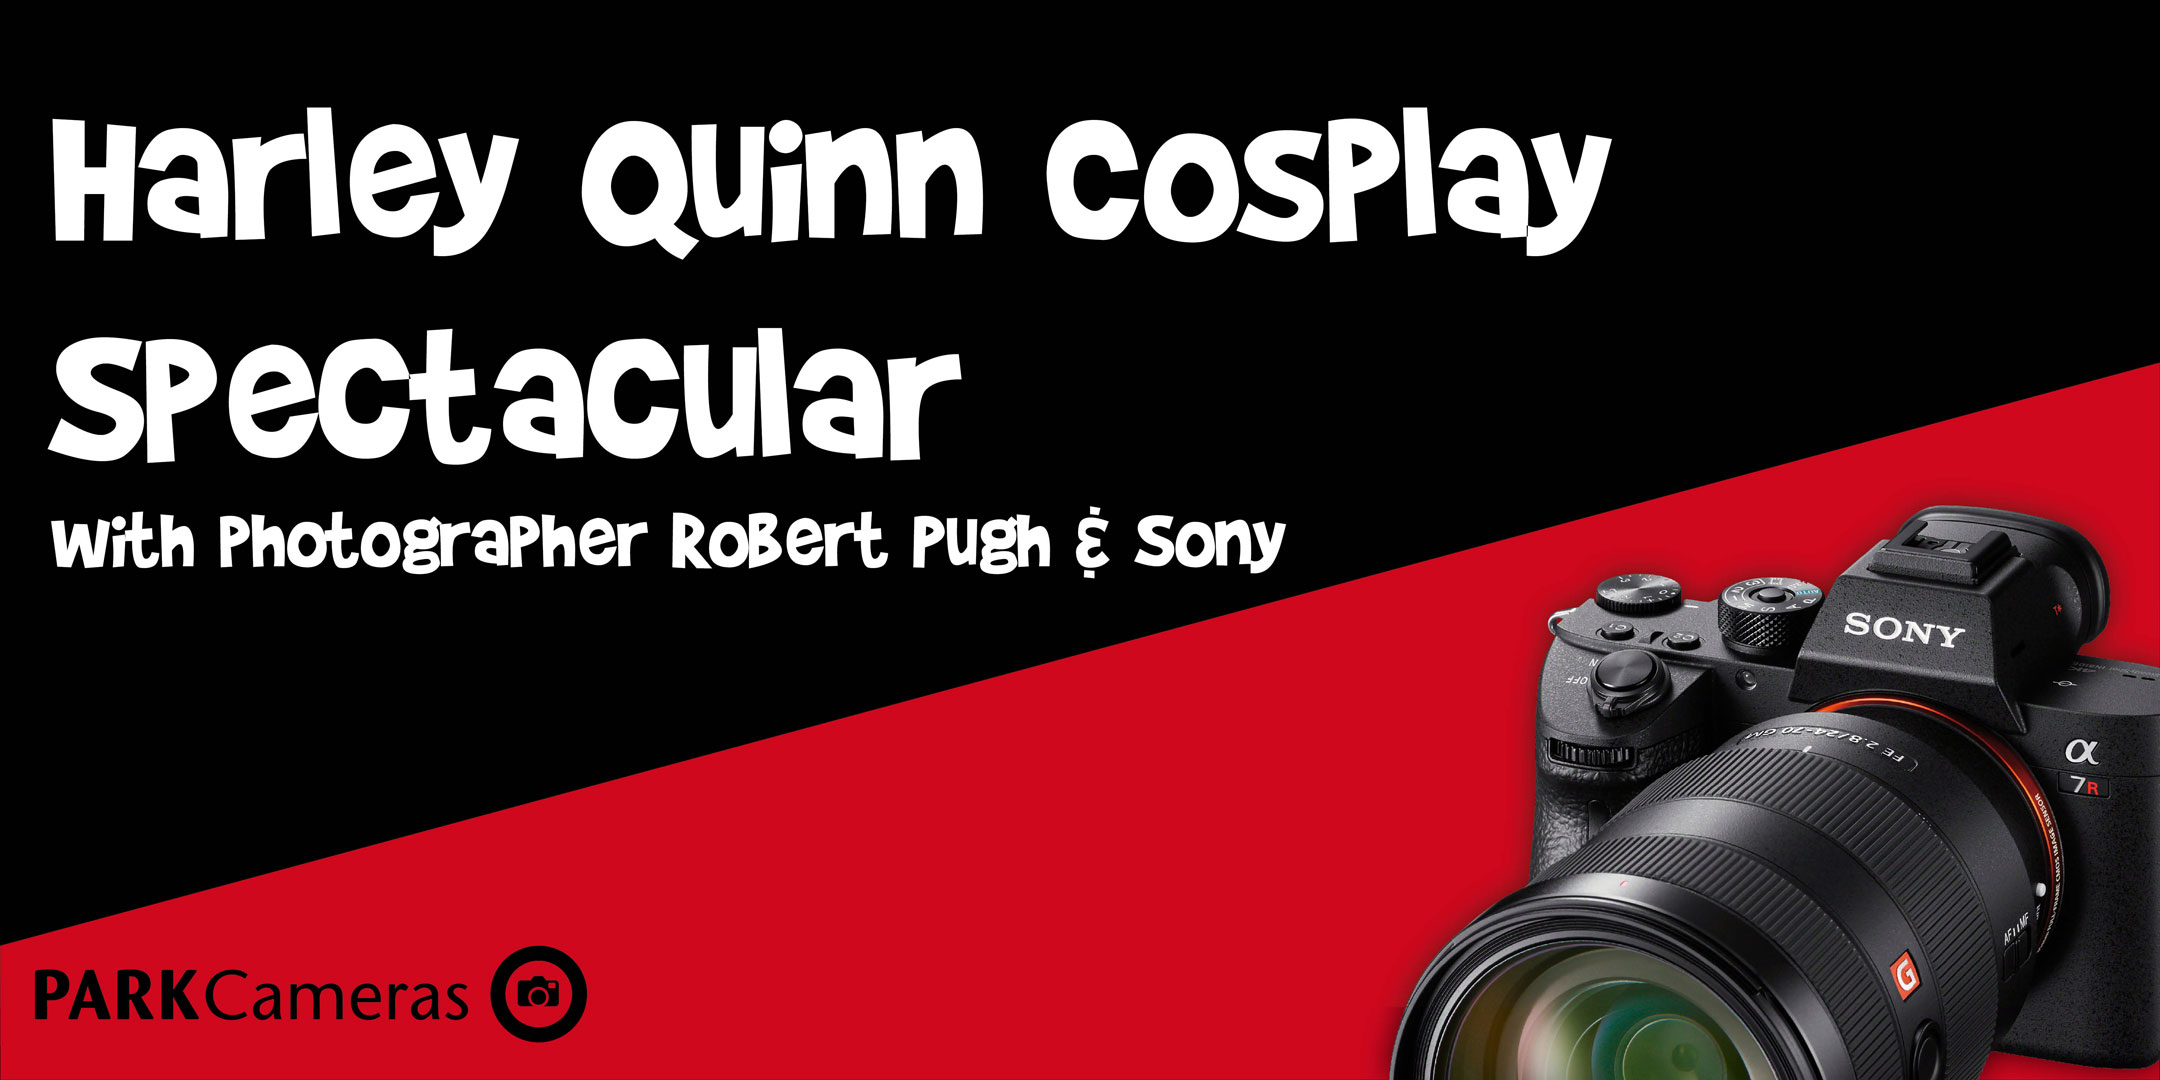 Harley Quinn Cosplay Spectacular; with Robert Pugh